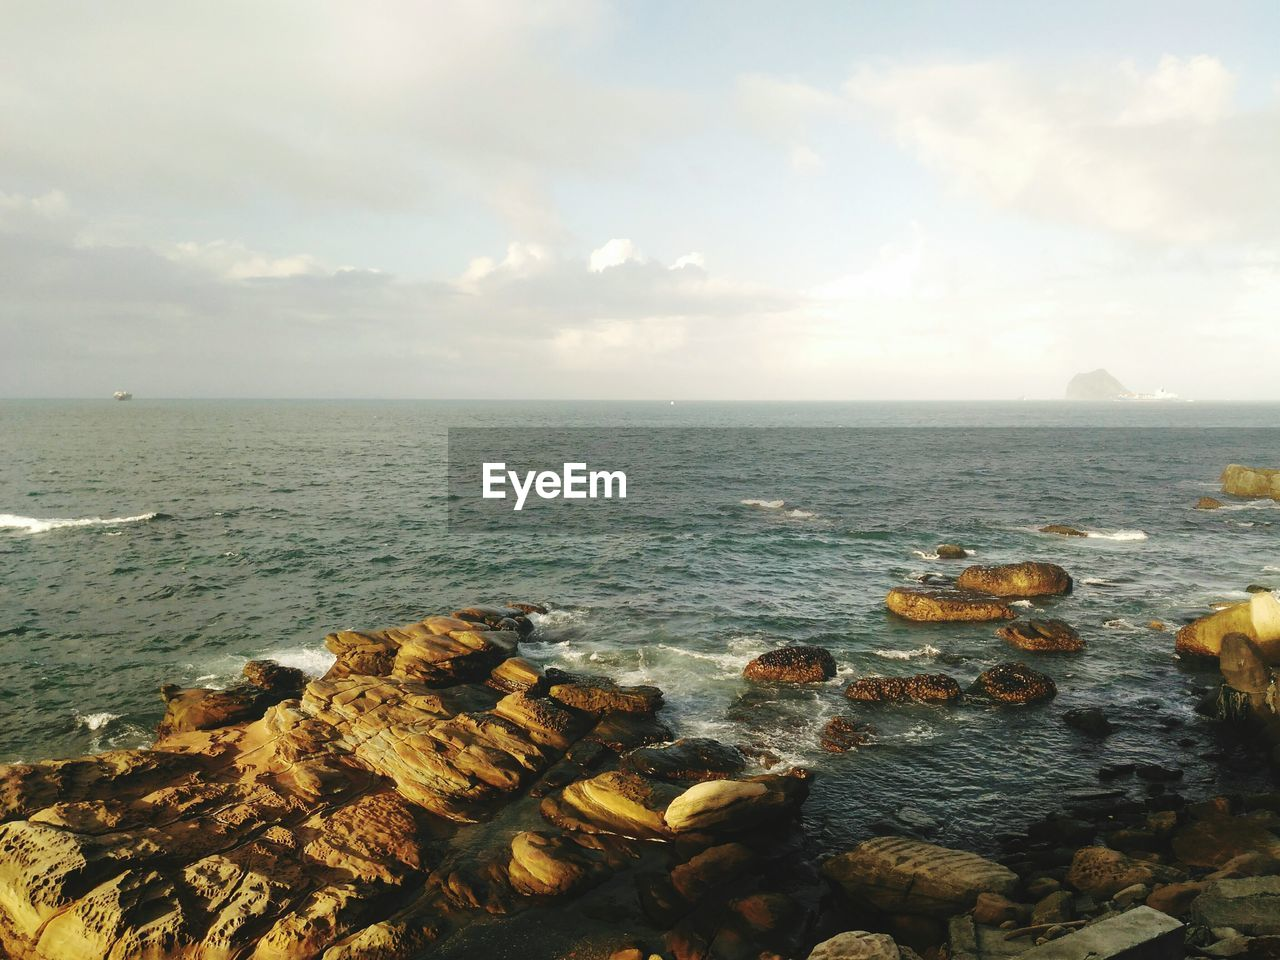 sea, water, horizon over water, scenics, nature, tranquility, sky, tranquil scene, beauty in nature, no people, outdoors, rock - object, day, cloud - sky, beach